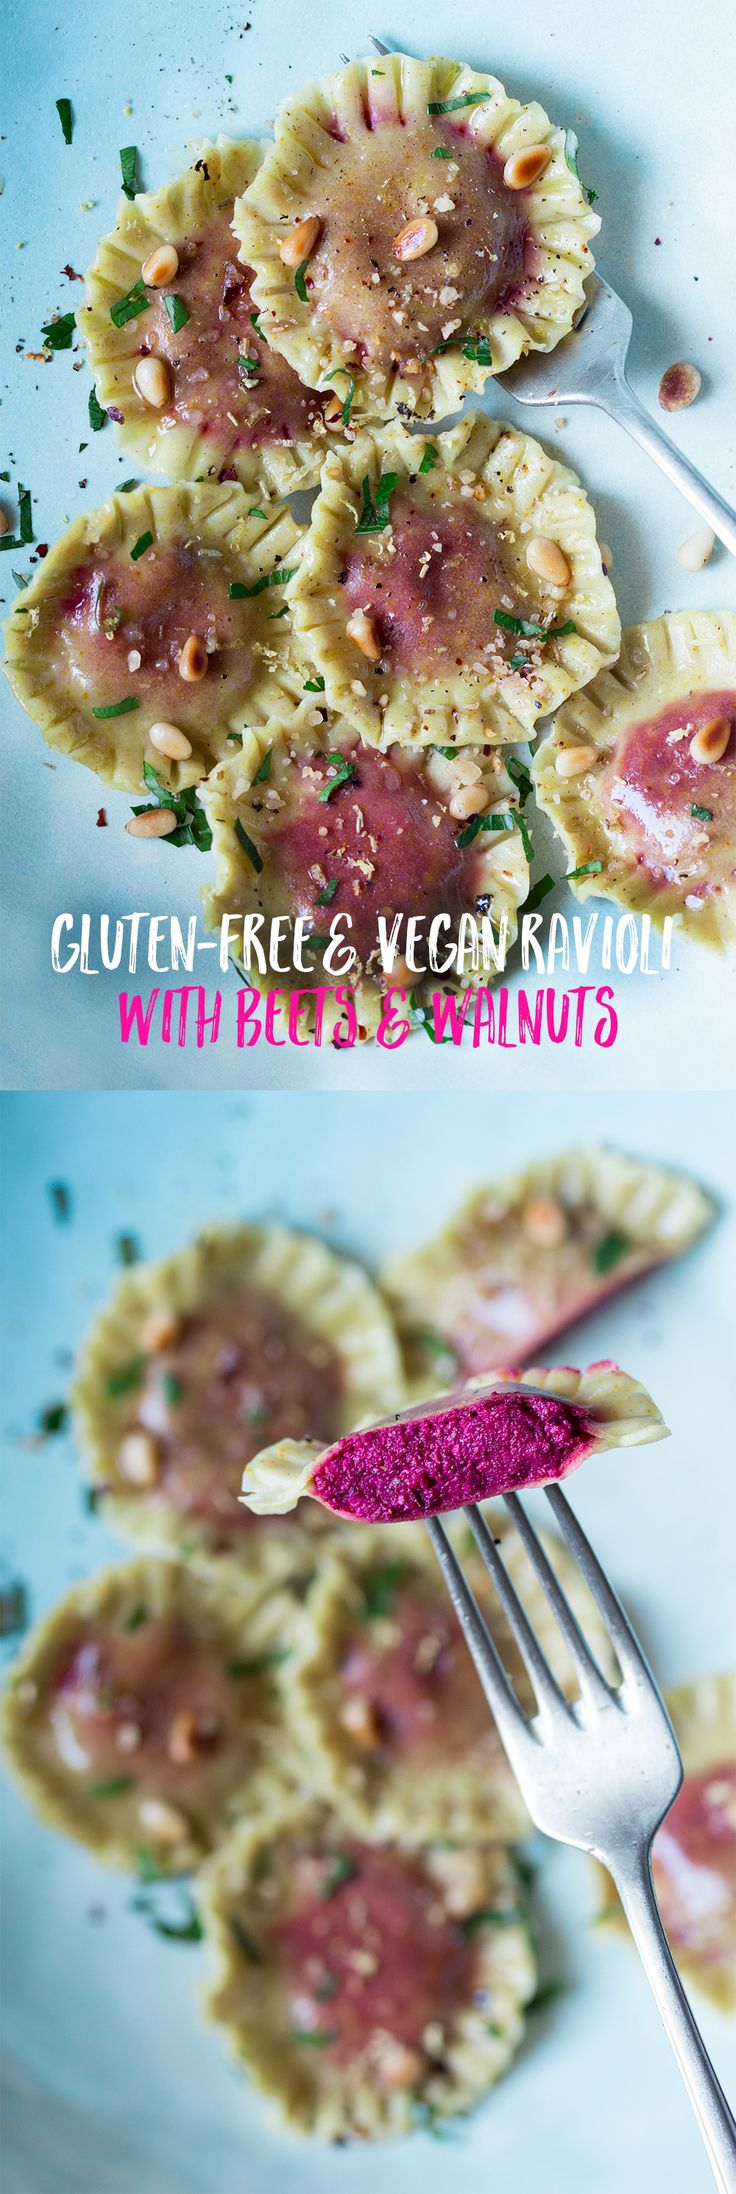 These #glutenfree and #vegan #ravioli filled with roasted #beetroot and #walnut filling make such an impressive #dinner They are. #easy to make too, no need for a pasta machine, a rolling pin, a cookie cutter and a fork is all you need. #recipe #recipes #eggless #pasta #italian #vegetarian #aquafaba